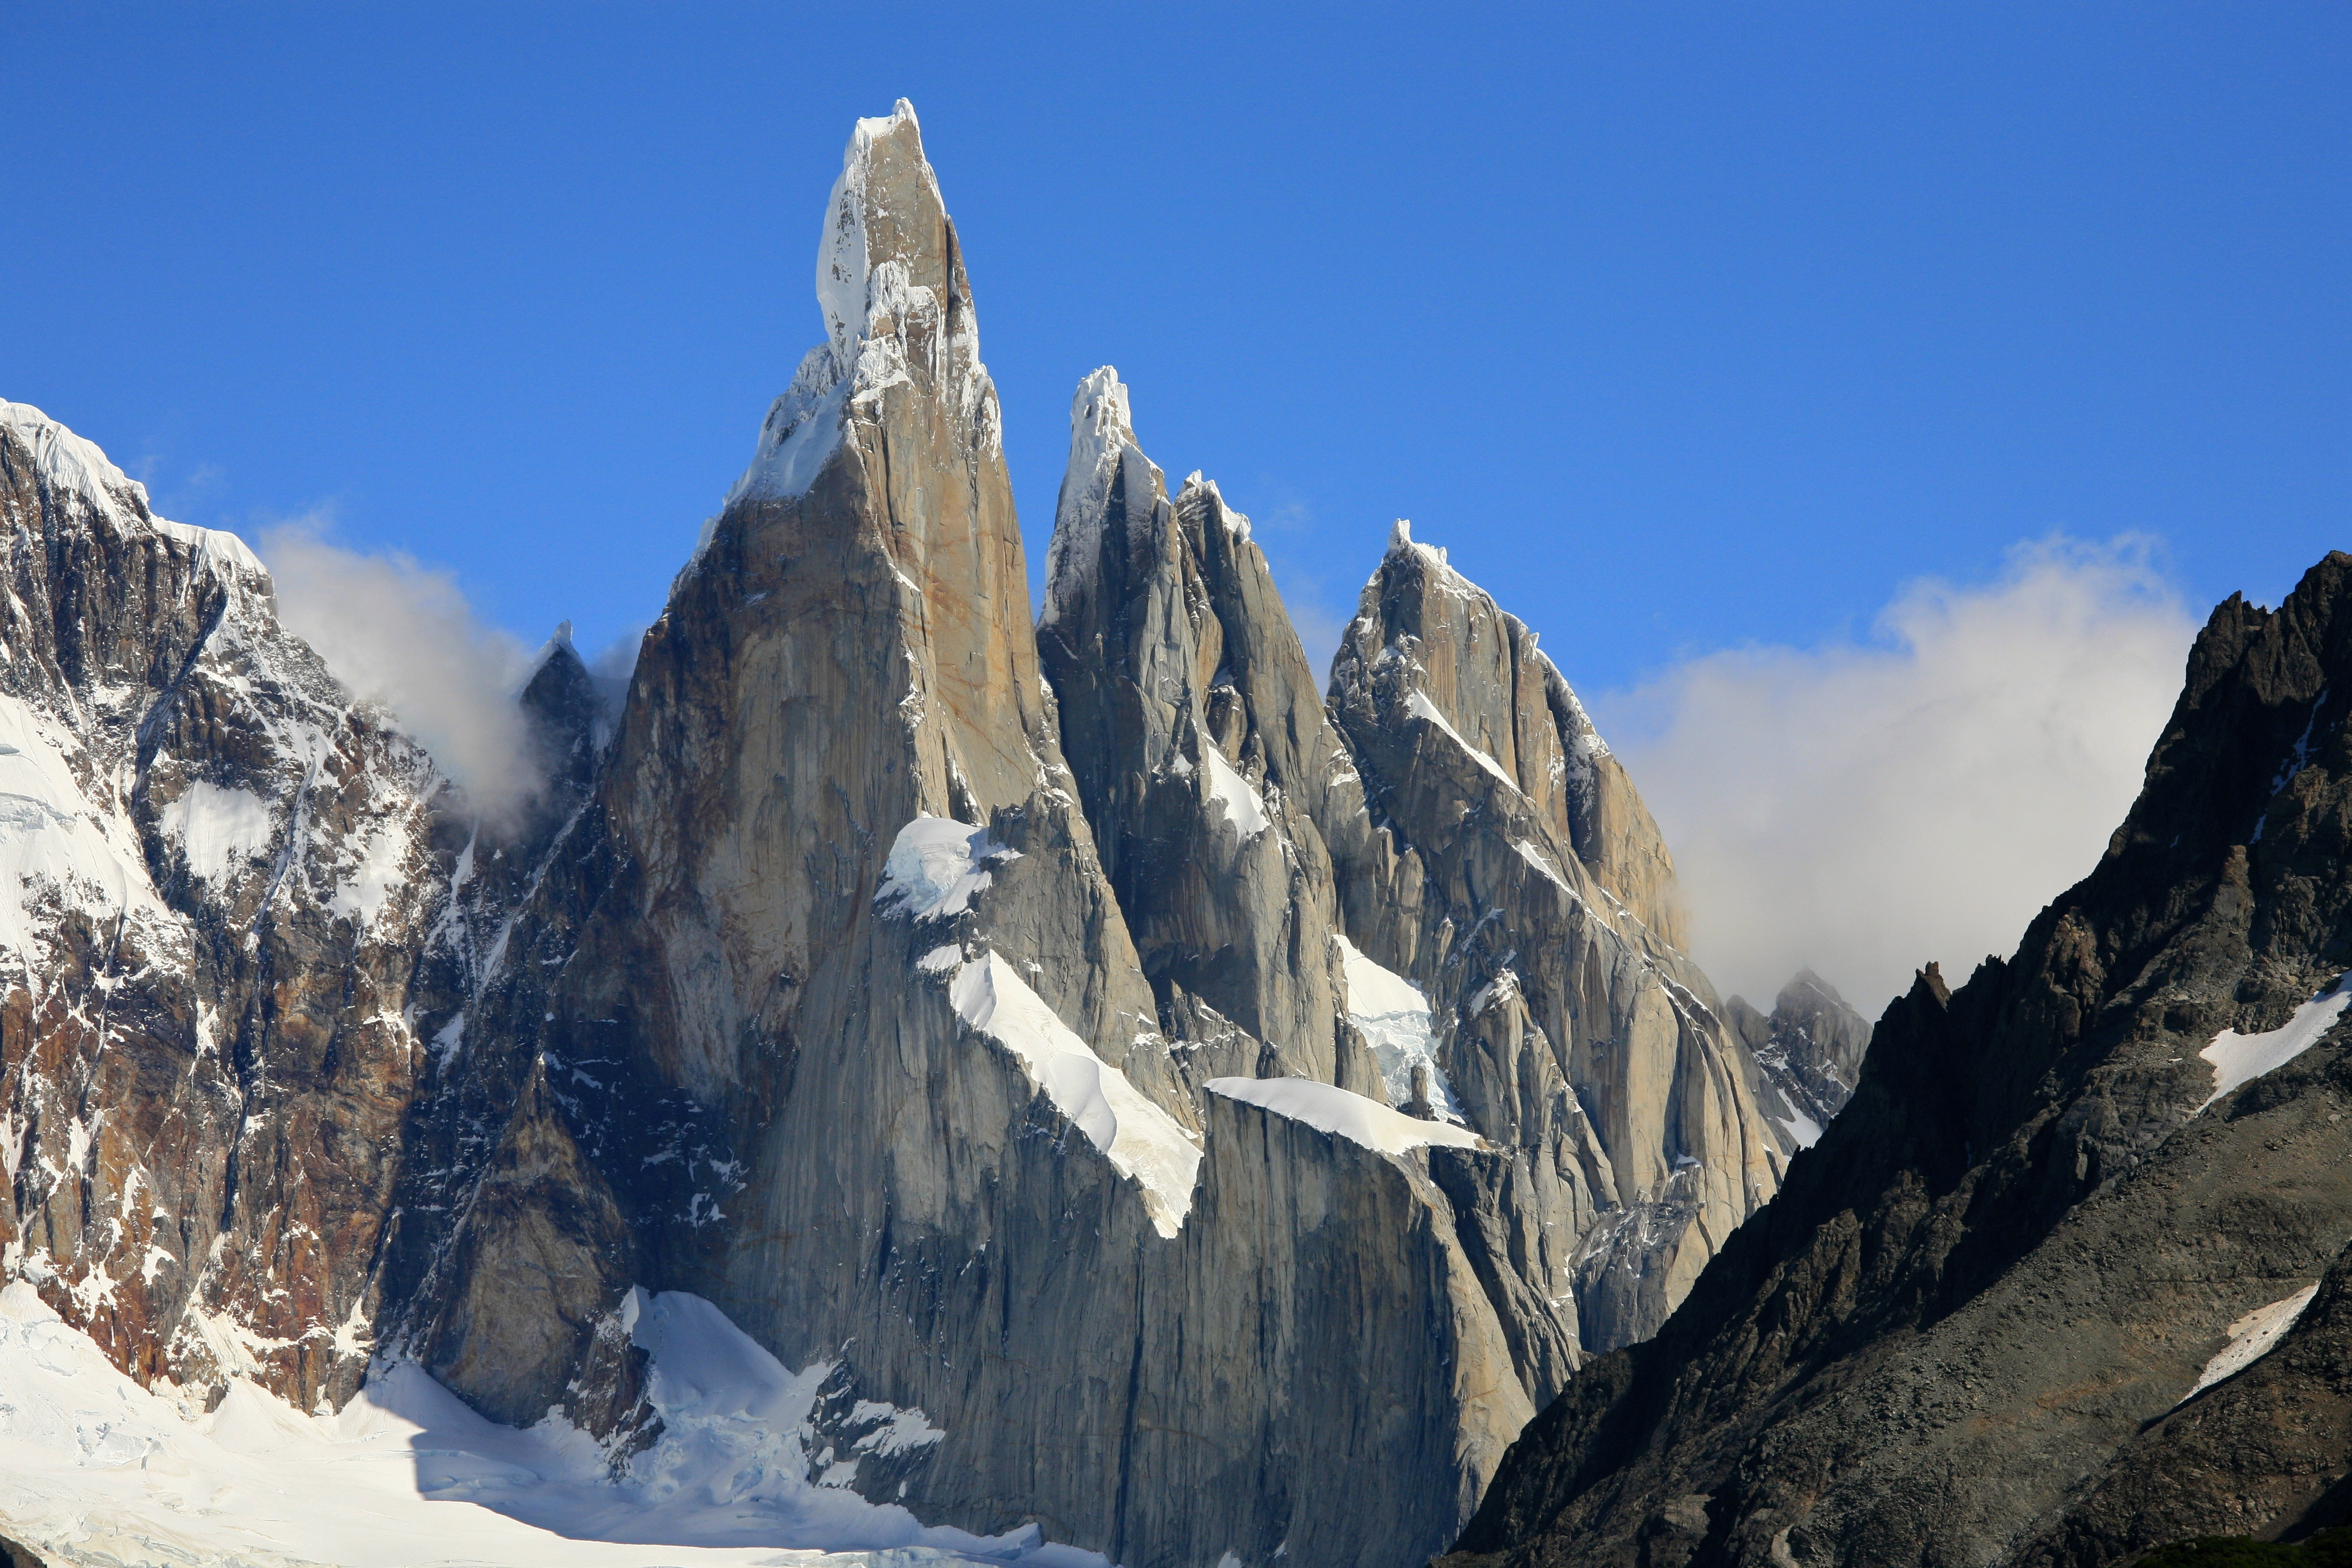 most dangerous mountains in the world Cerro Torre